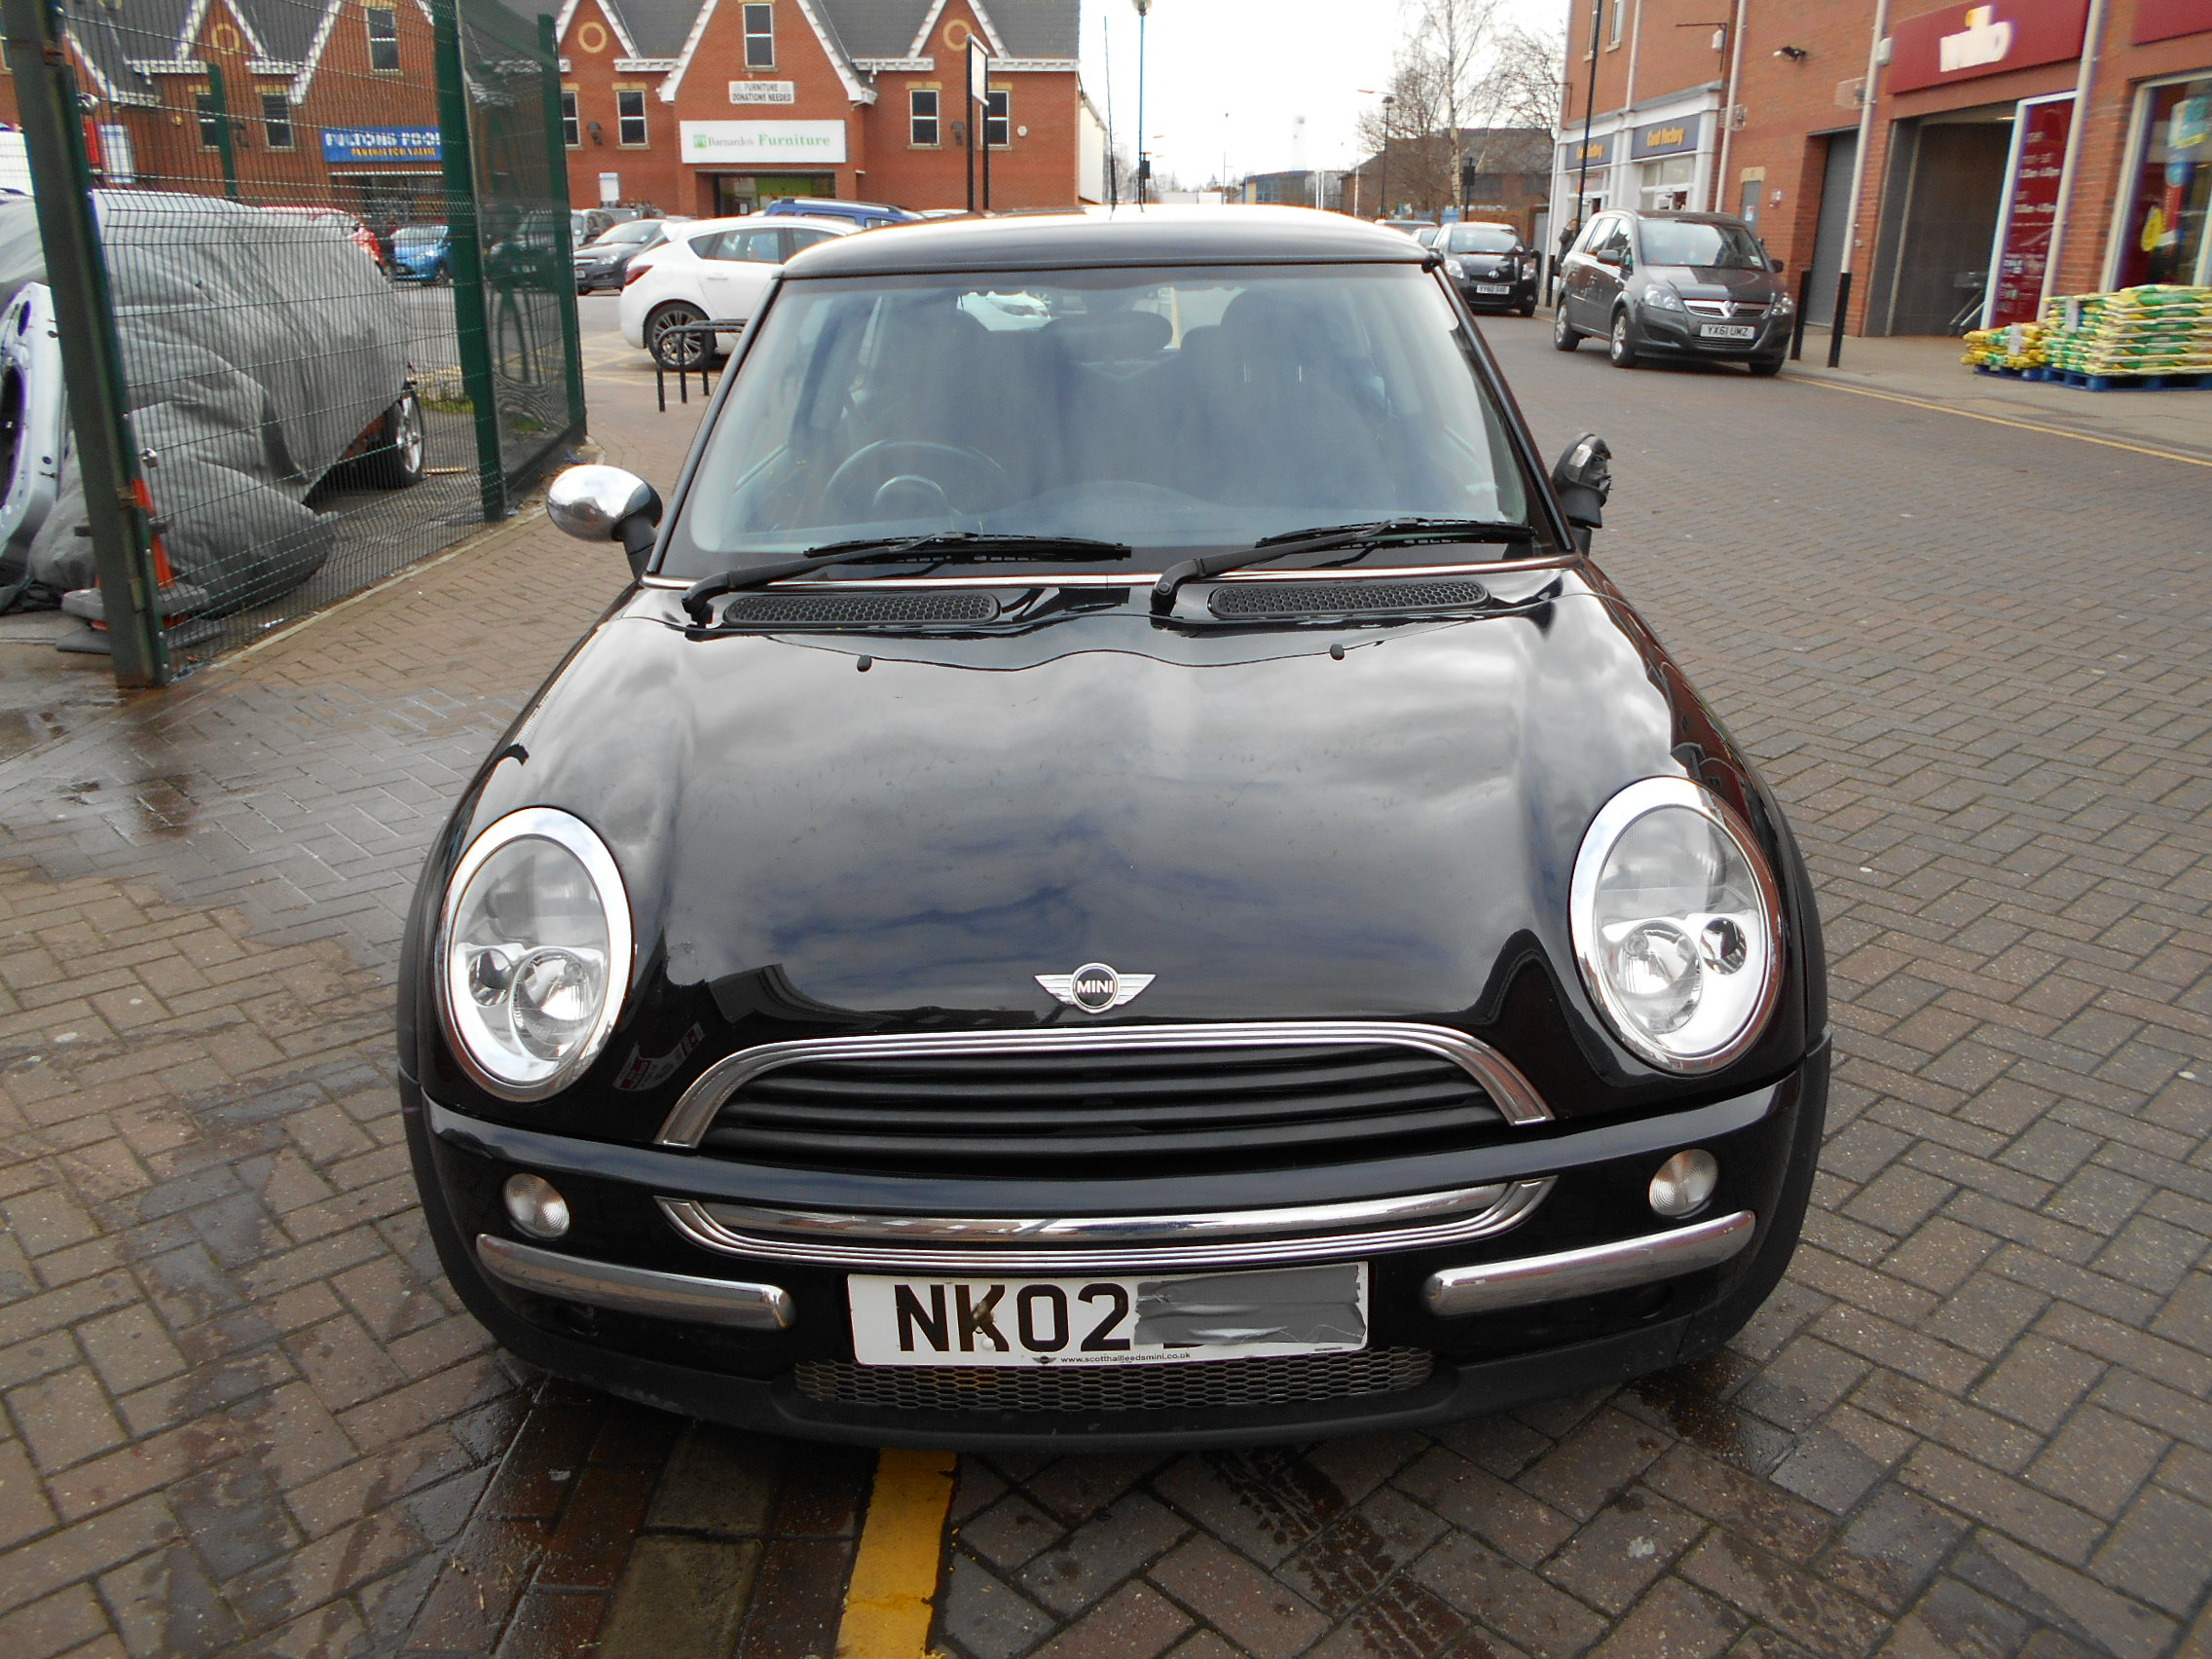 02 Black 1.6 BMW Mini One - 5